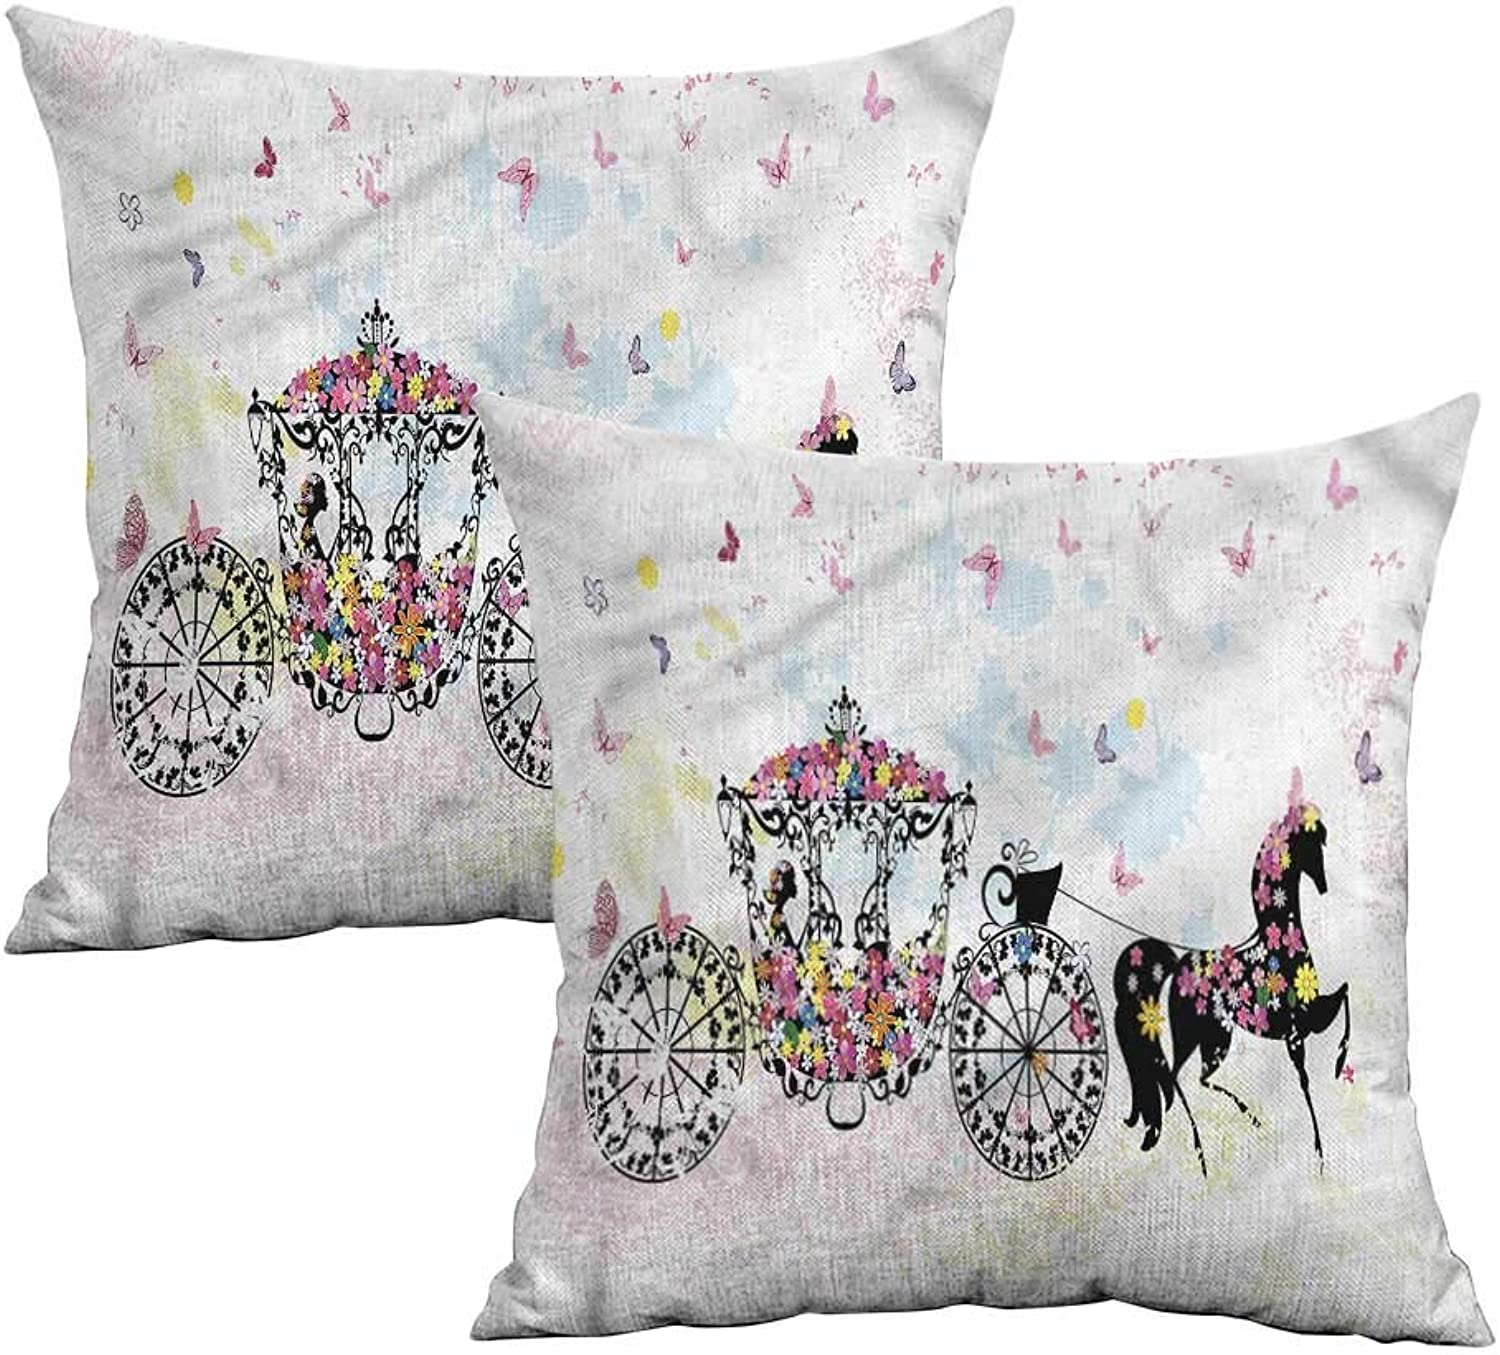 Khaki home Kids Square Pillowcase Predector Floral Carriage with Horse Square Body Pillowcase Cushion Cases Pillowcases for Sofa Bedroom Car W 20  x L 20  2 pcs